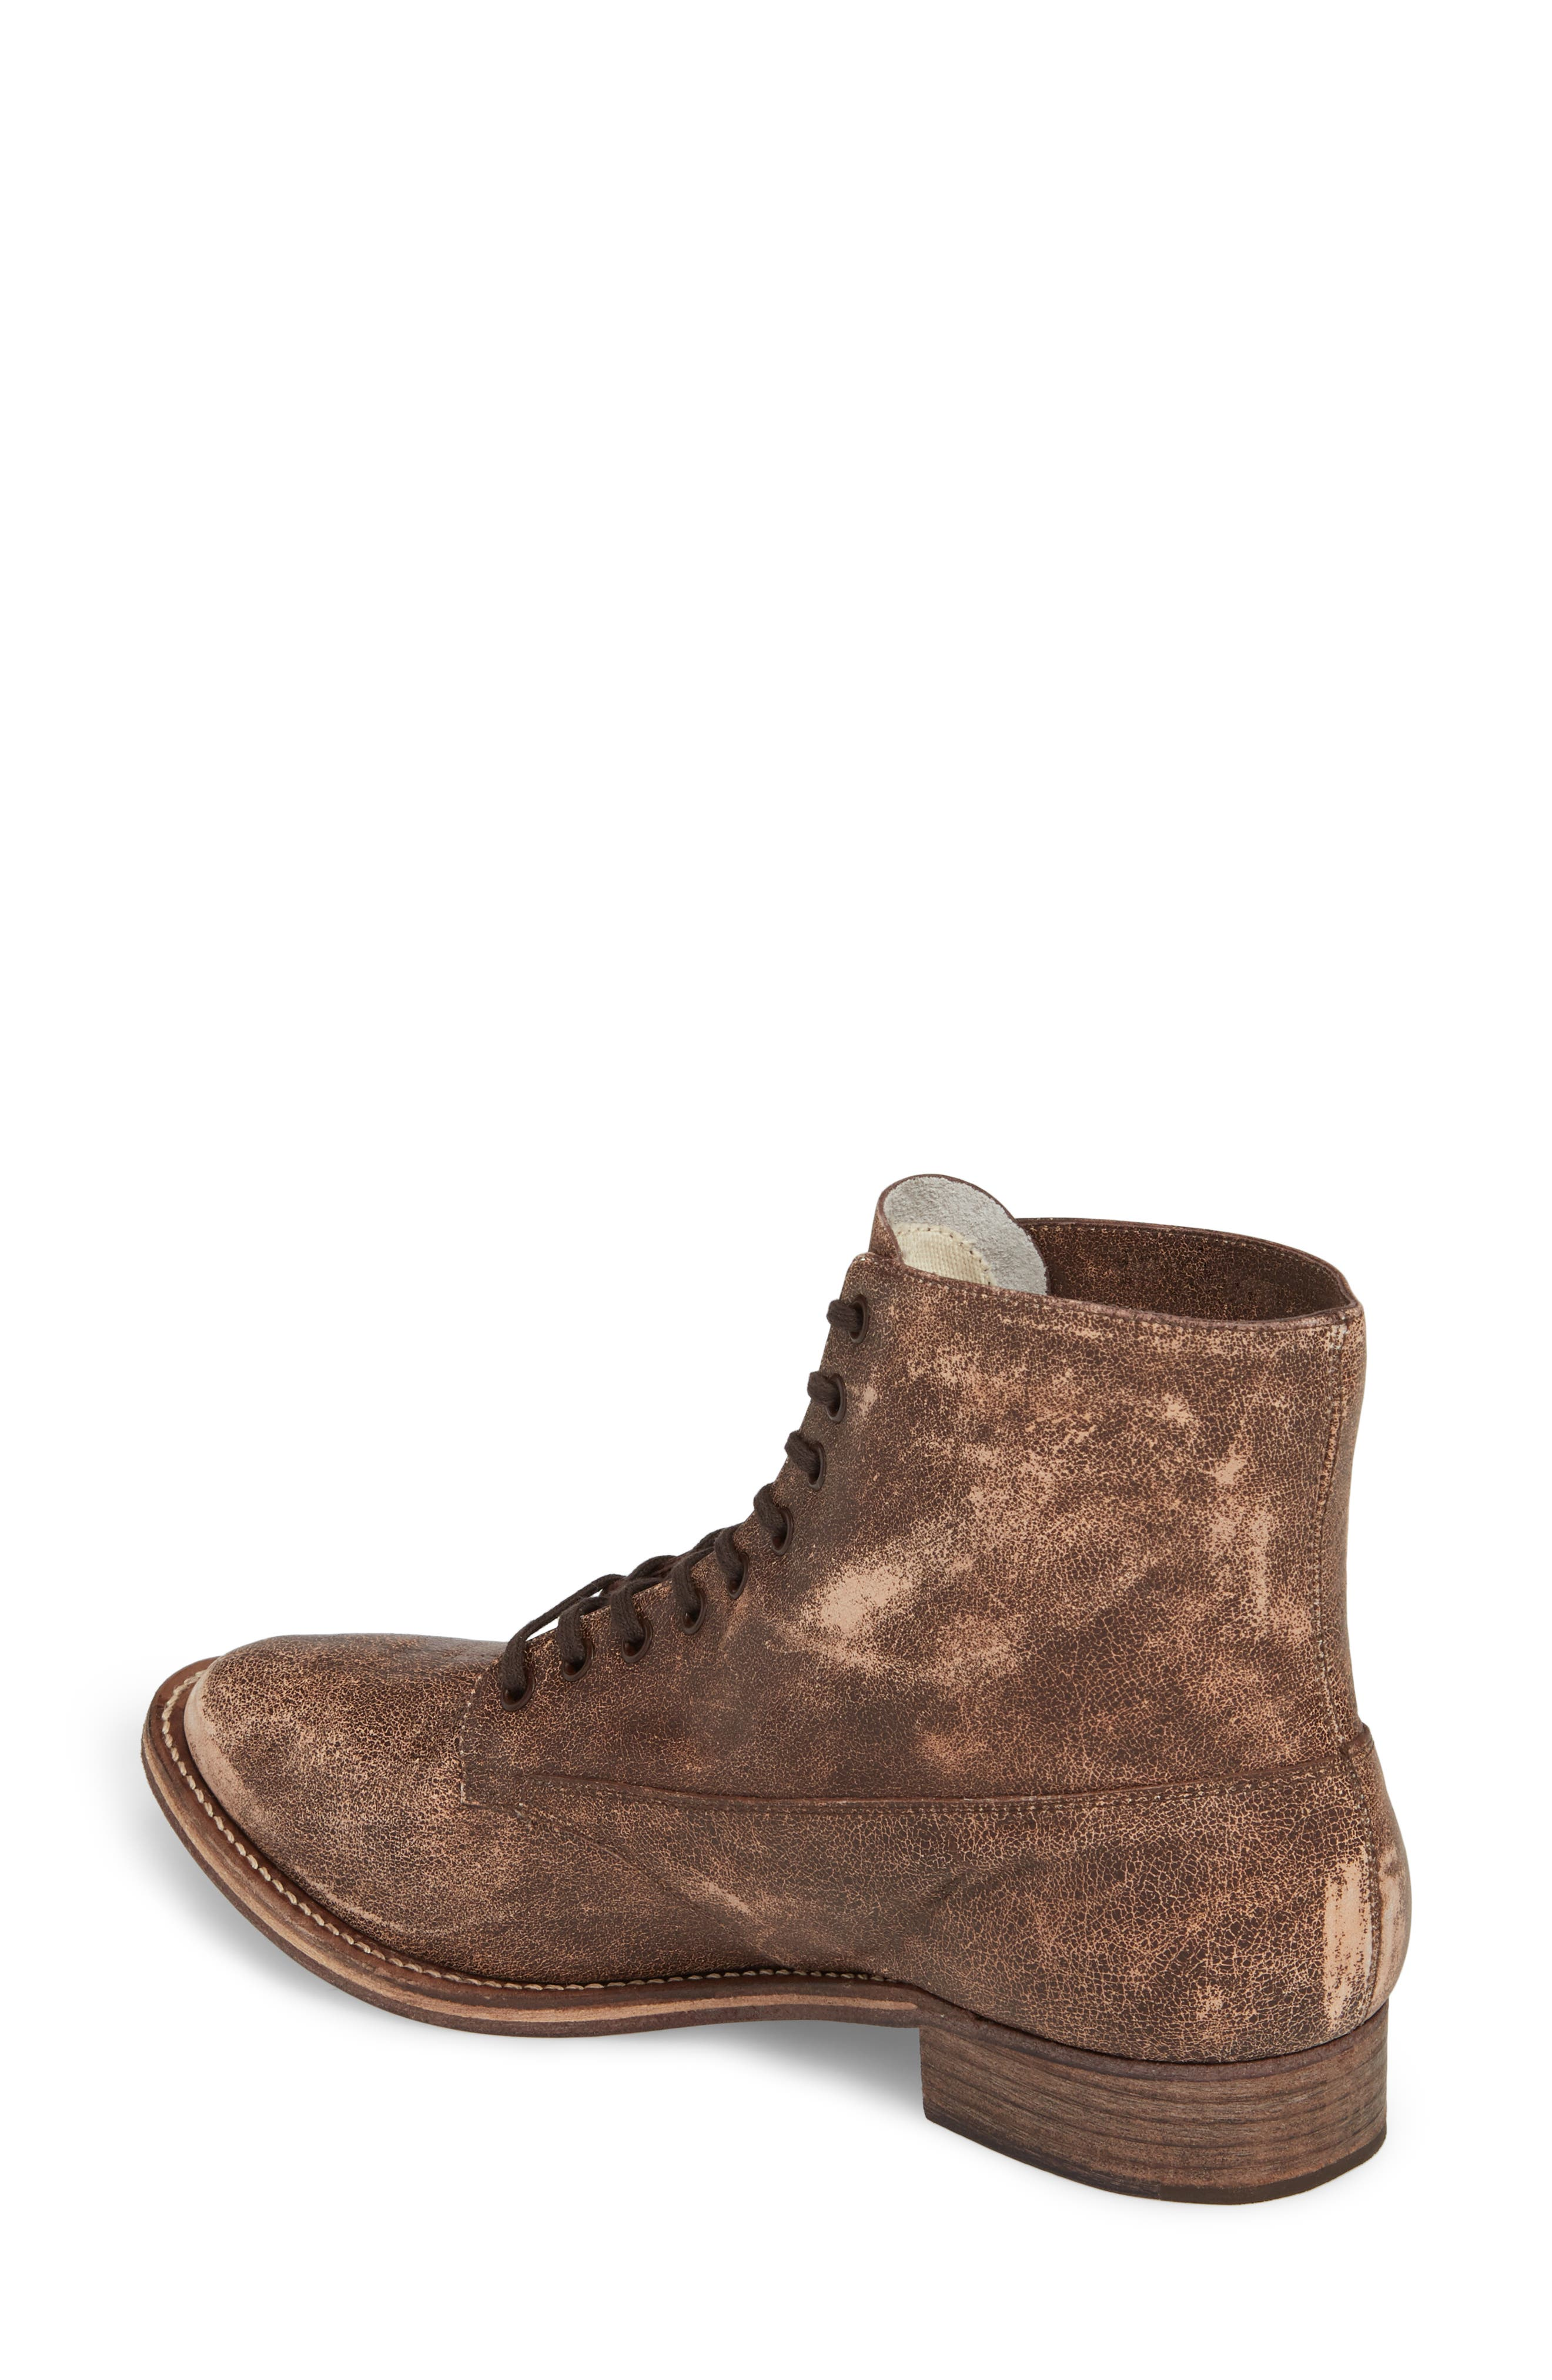 Boxcar Lace-Up Boot,                             Alternate thumbnail 2, color,                             Cordovan